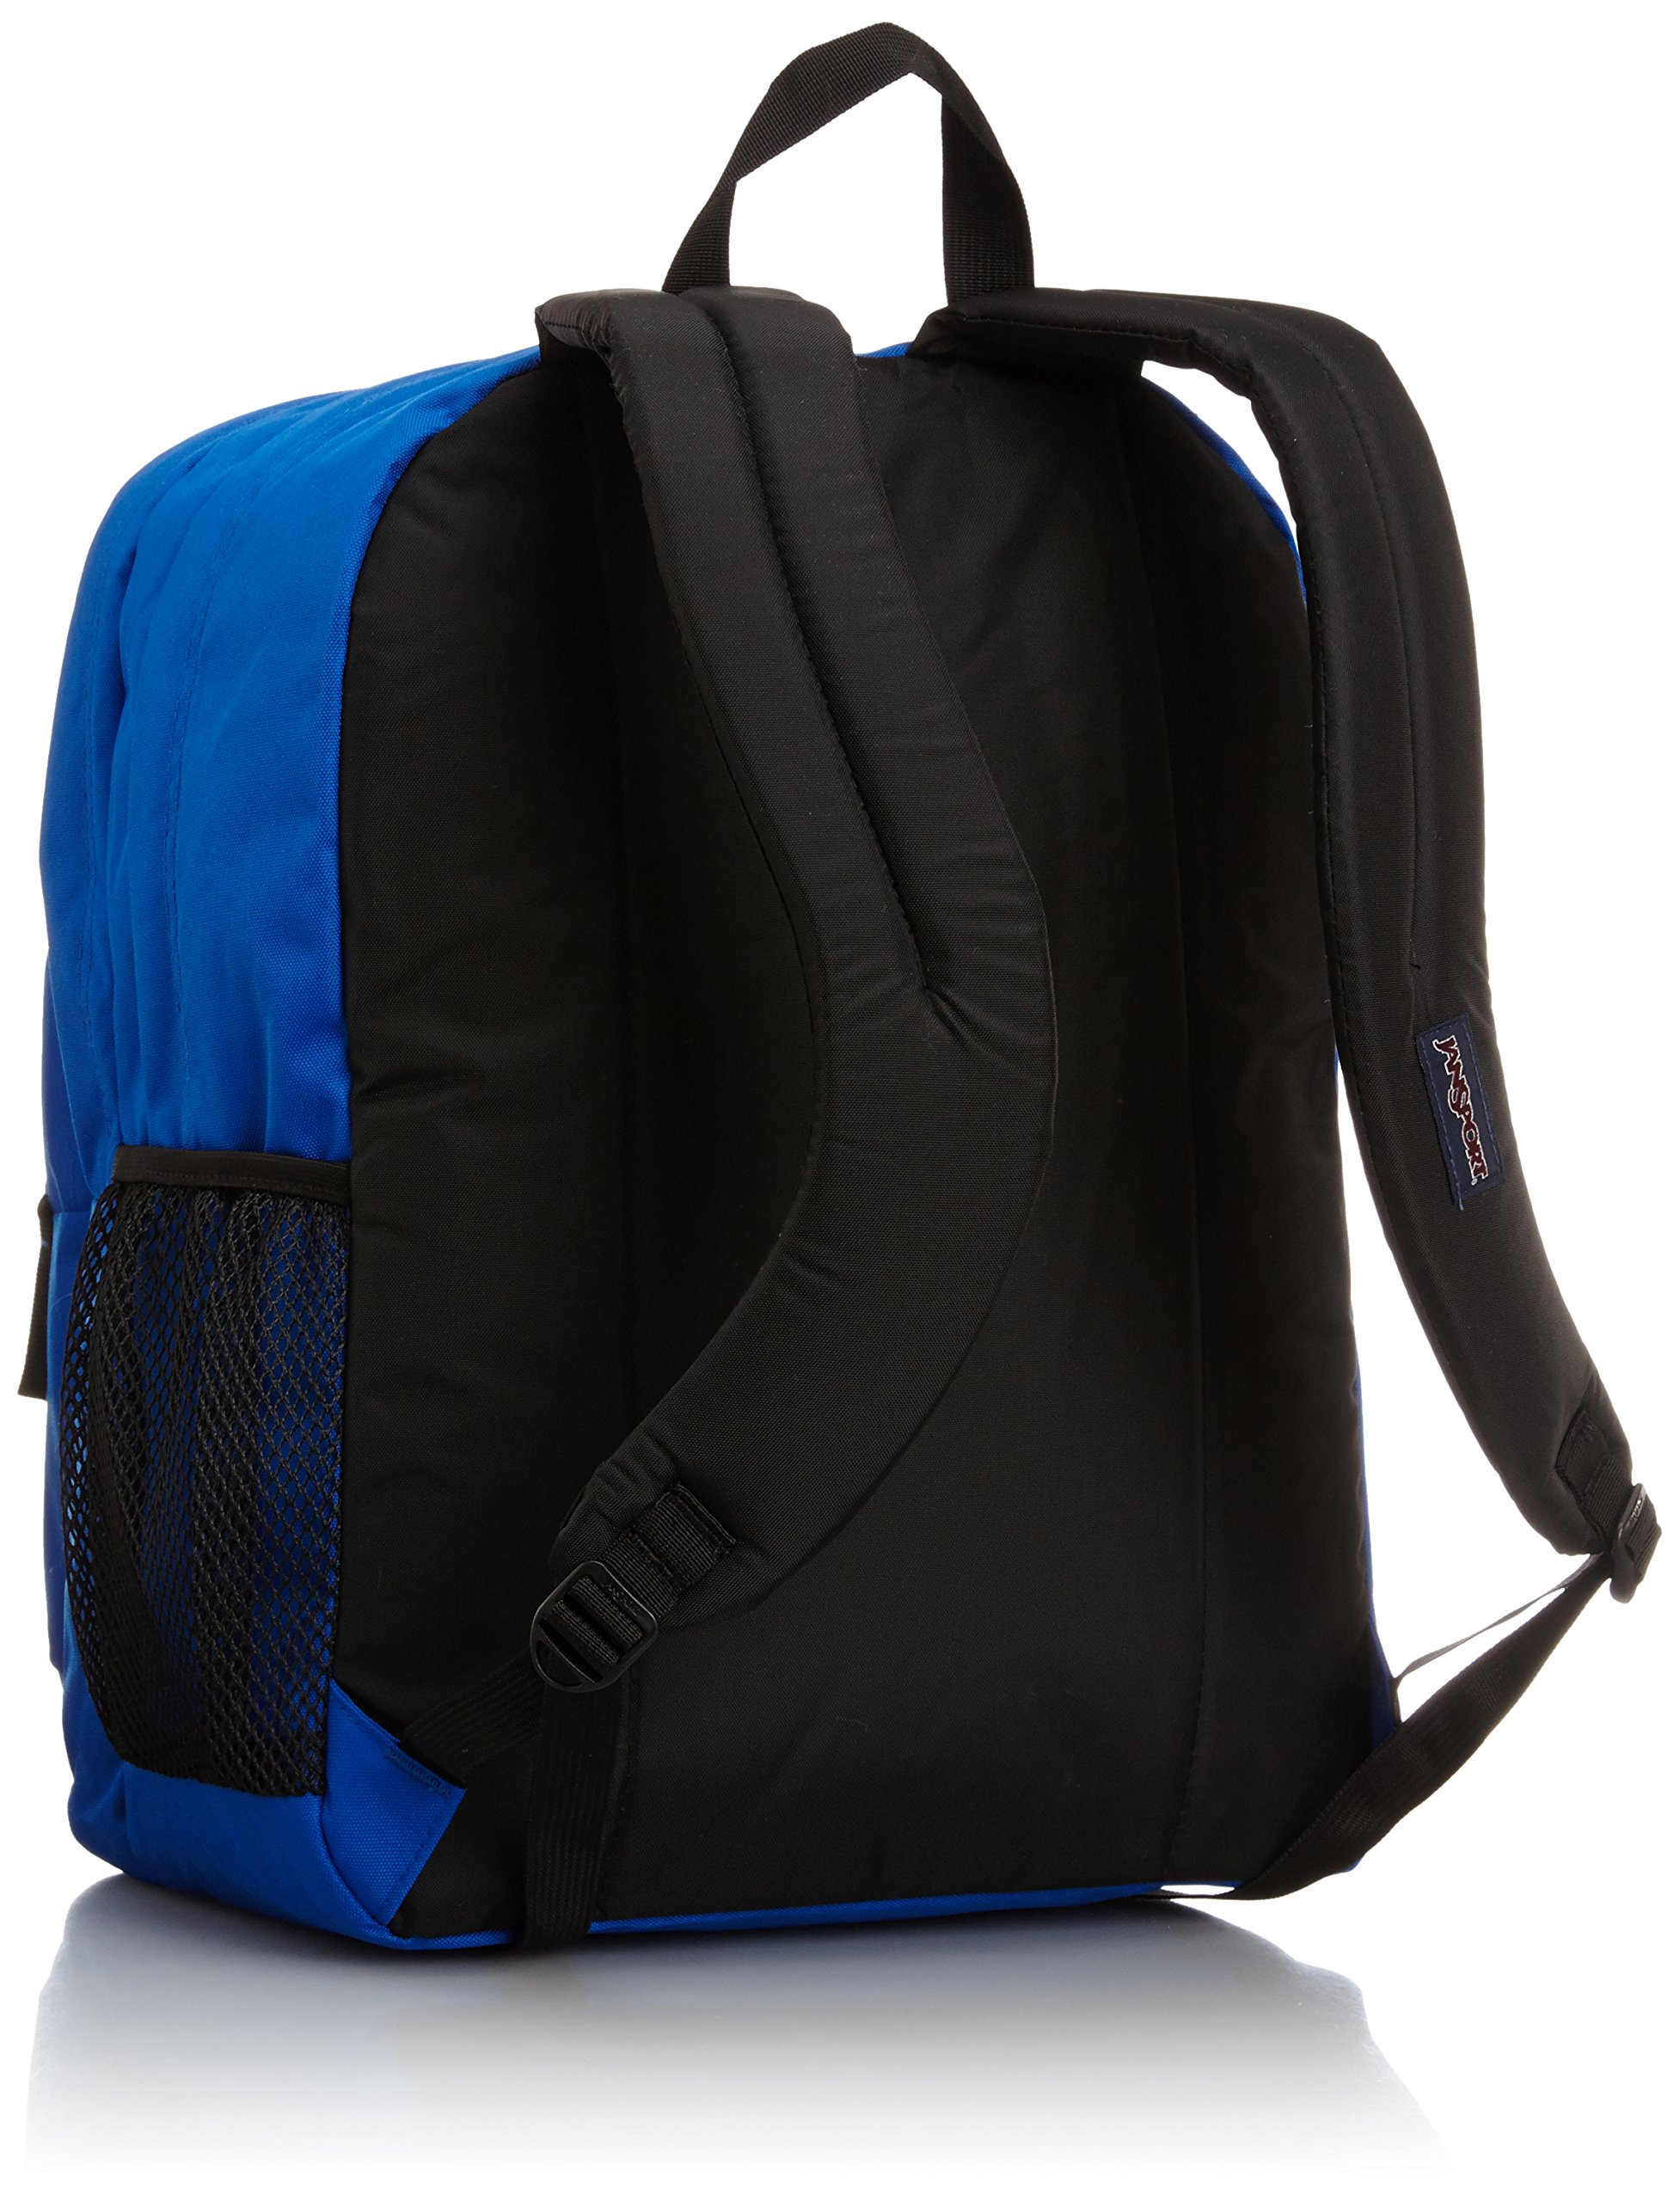 JanSport Big Student Classics Series Backpack - Blue Streak by JanSport (Image #3)